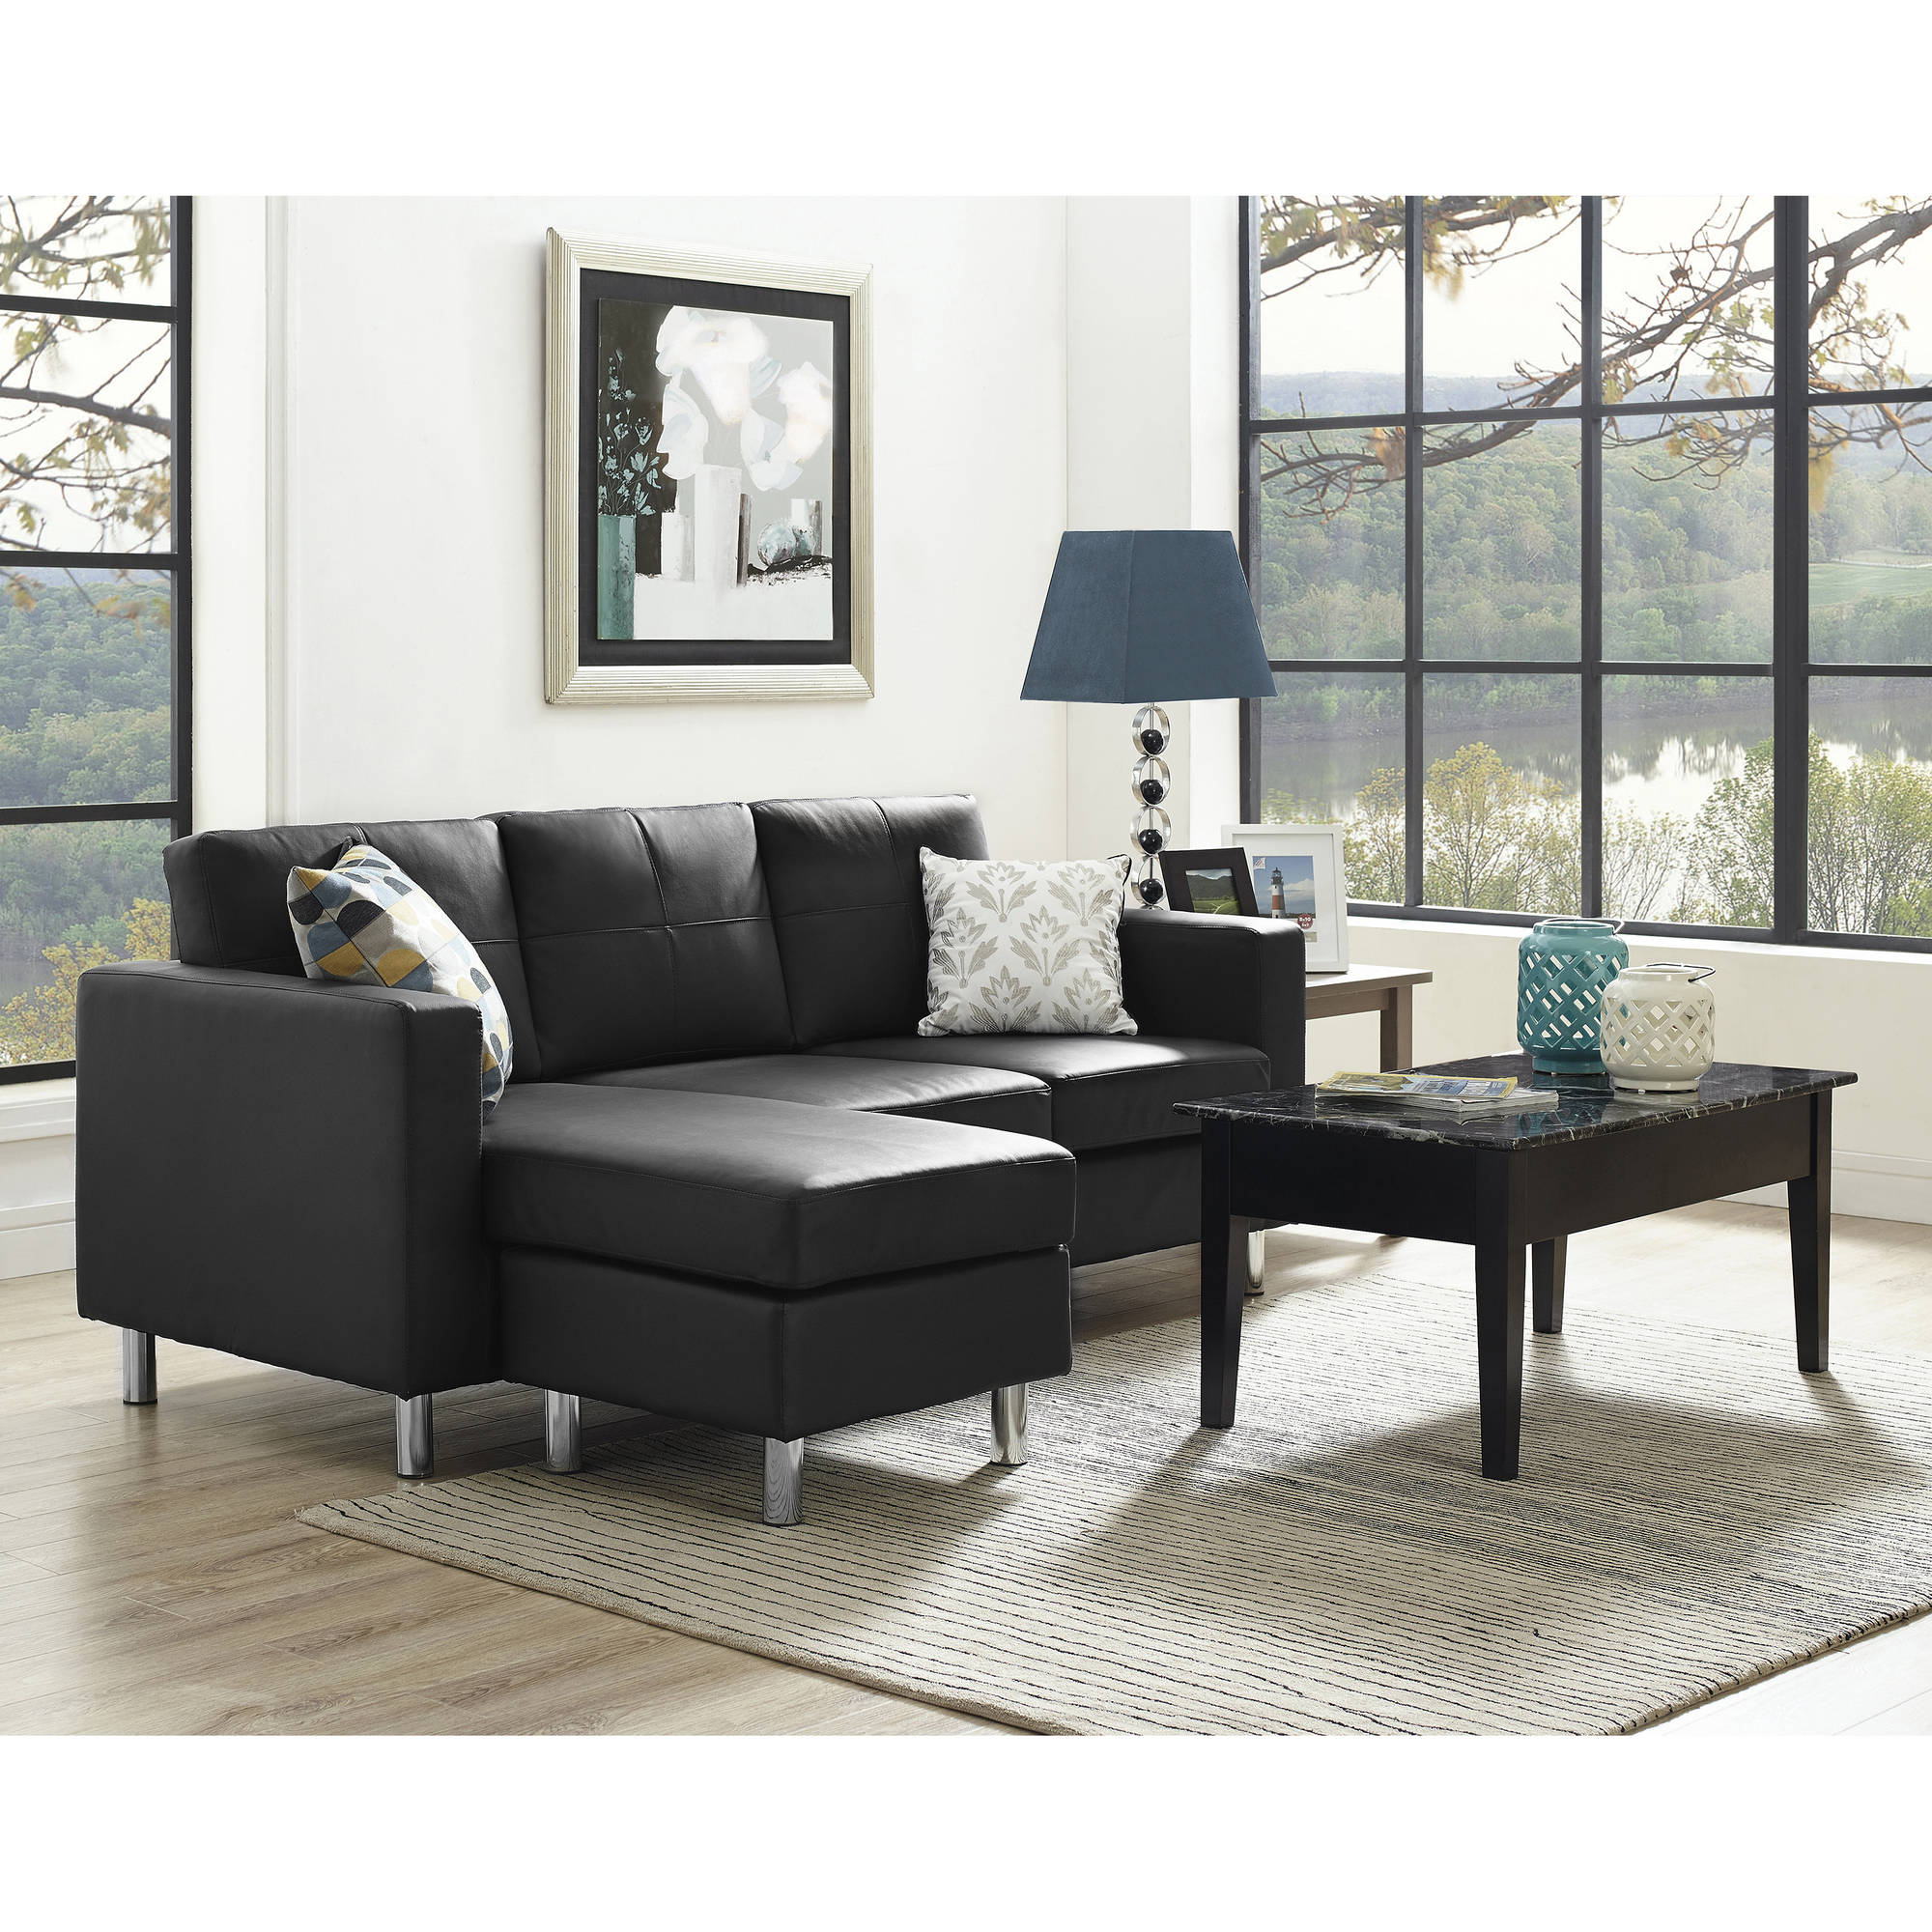 Dorel Living Small Spaces Configurable Sectional Sofa